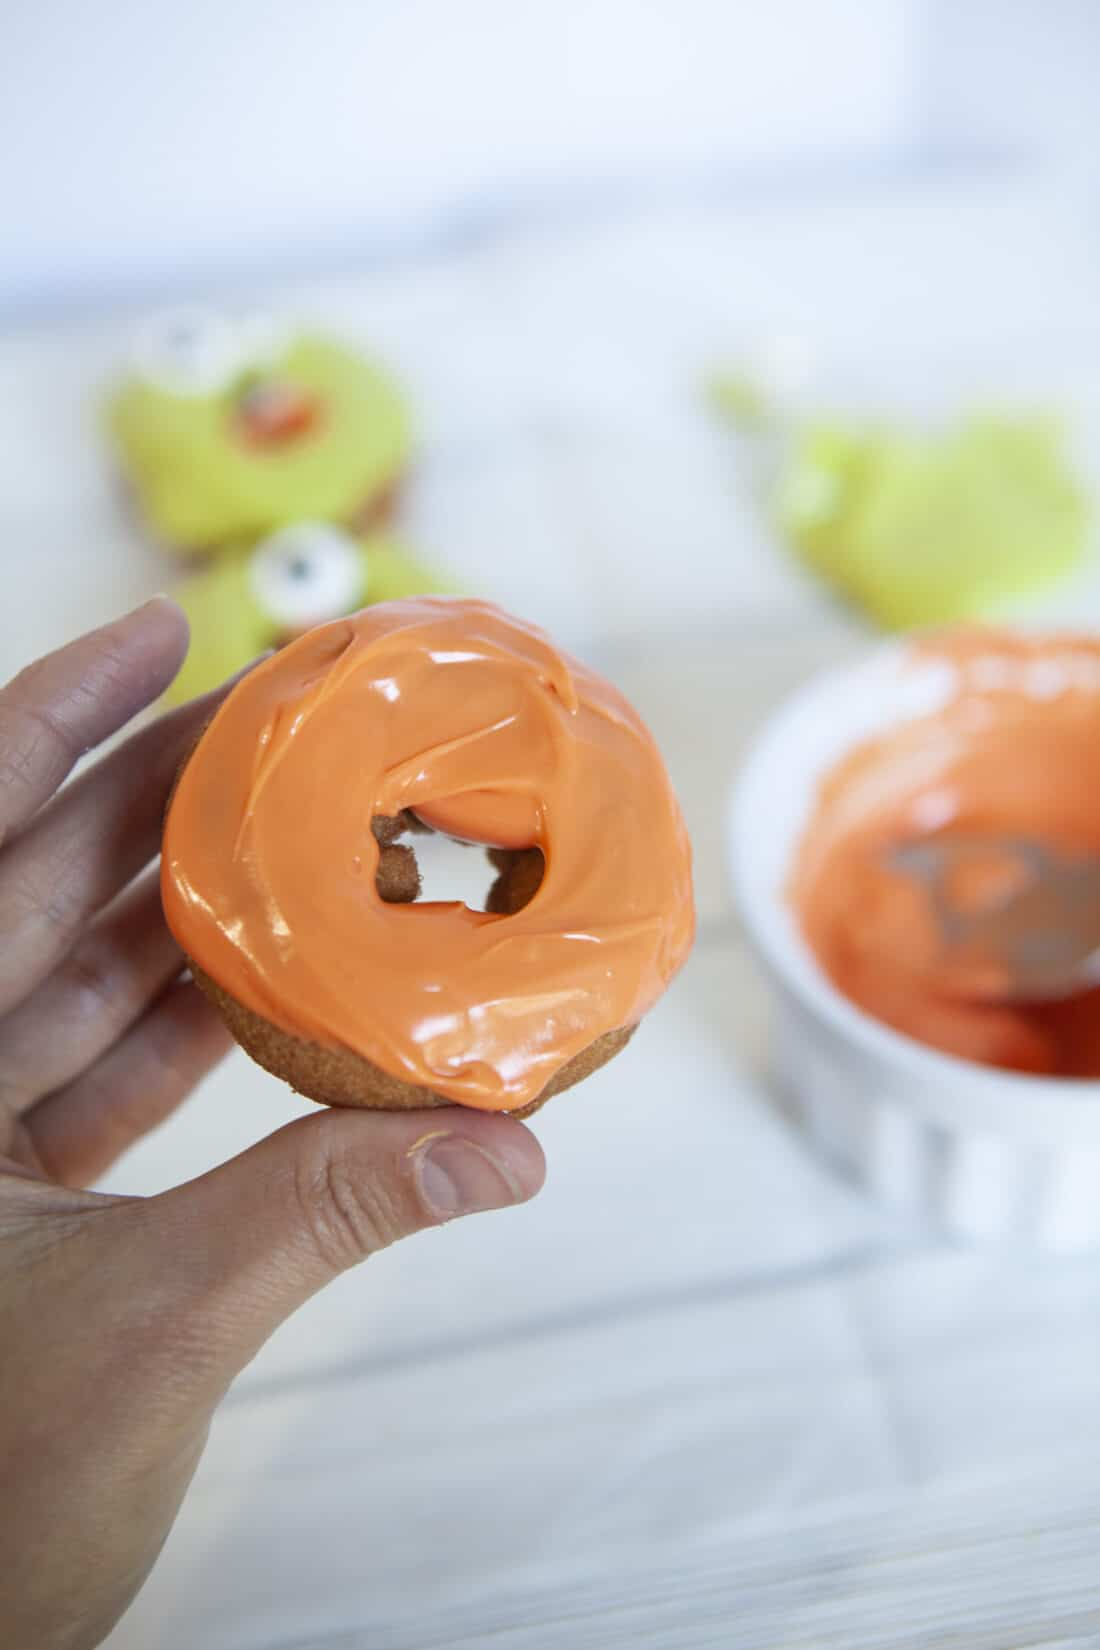 Monster Donuts Orange Donut. Make these spooky cute Monster Donuts for your next Halloween event. Made with your favorite donuts as a base, you can create and decorate vampires, mummies, and other iconic edible Halloween monsters.